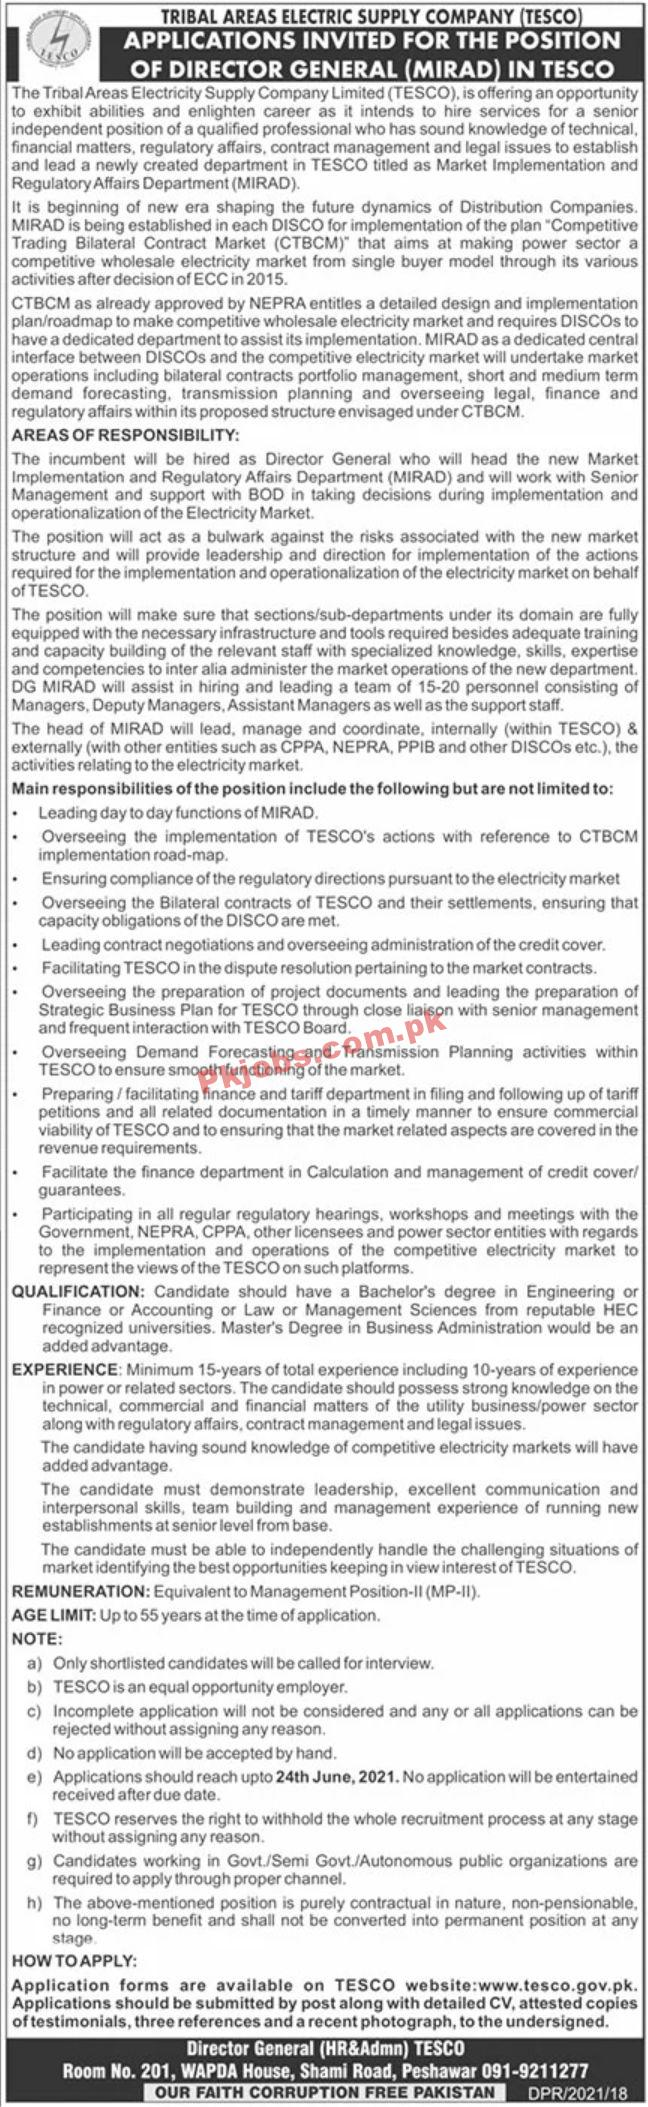 Jobs In Tribal Areas Electric Supply Company Tesco